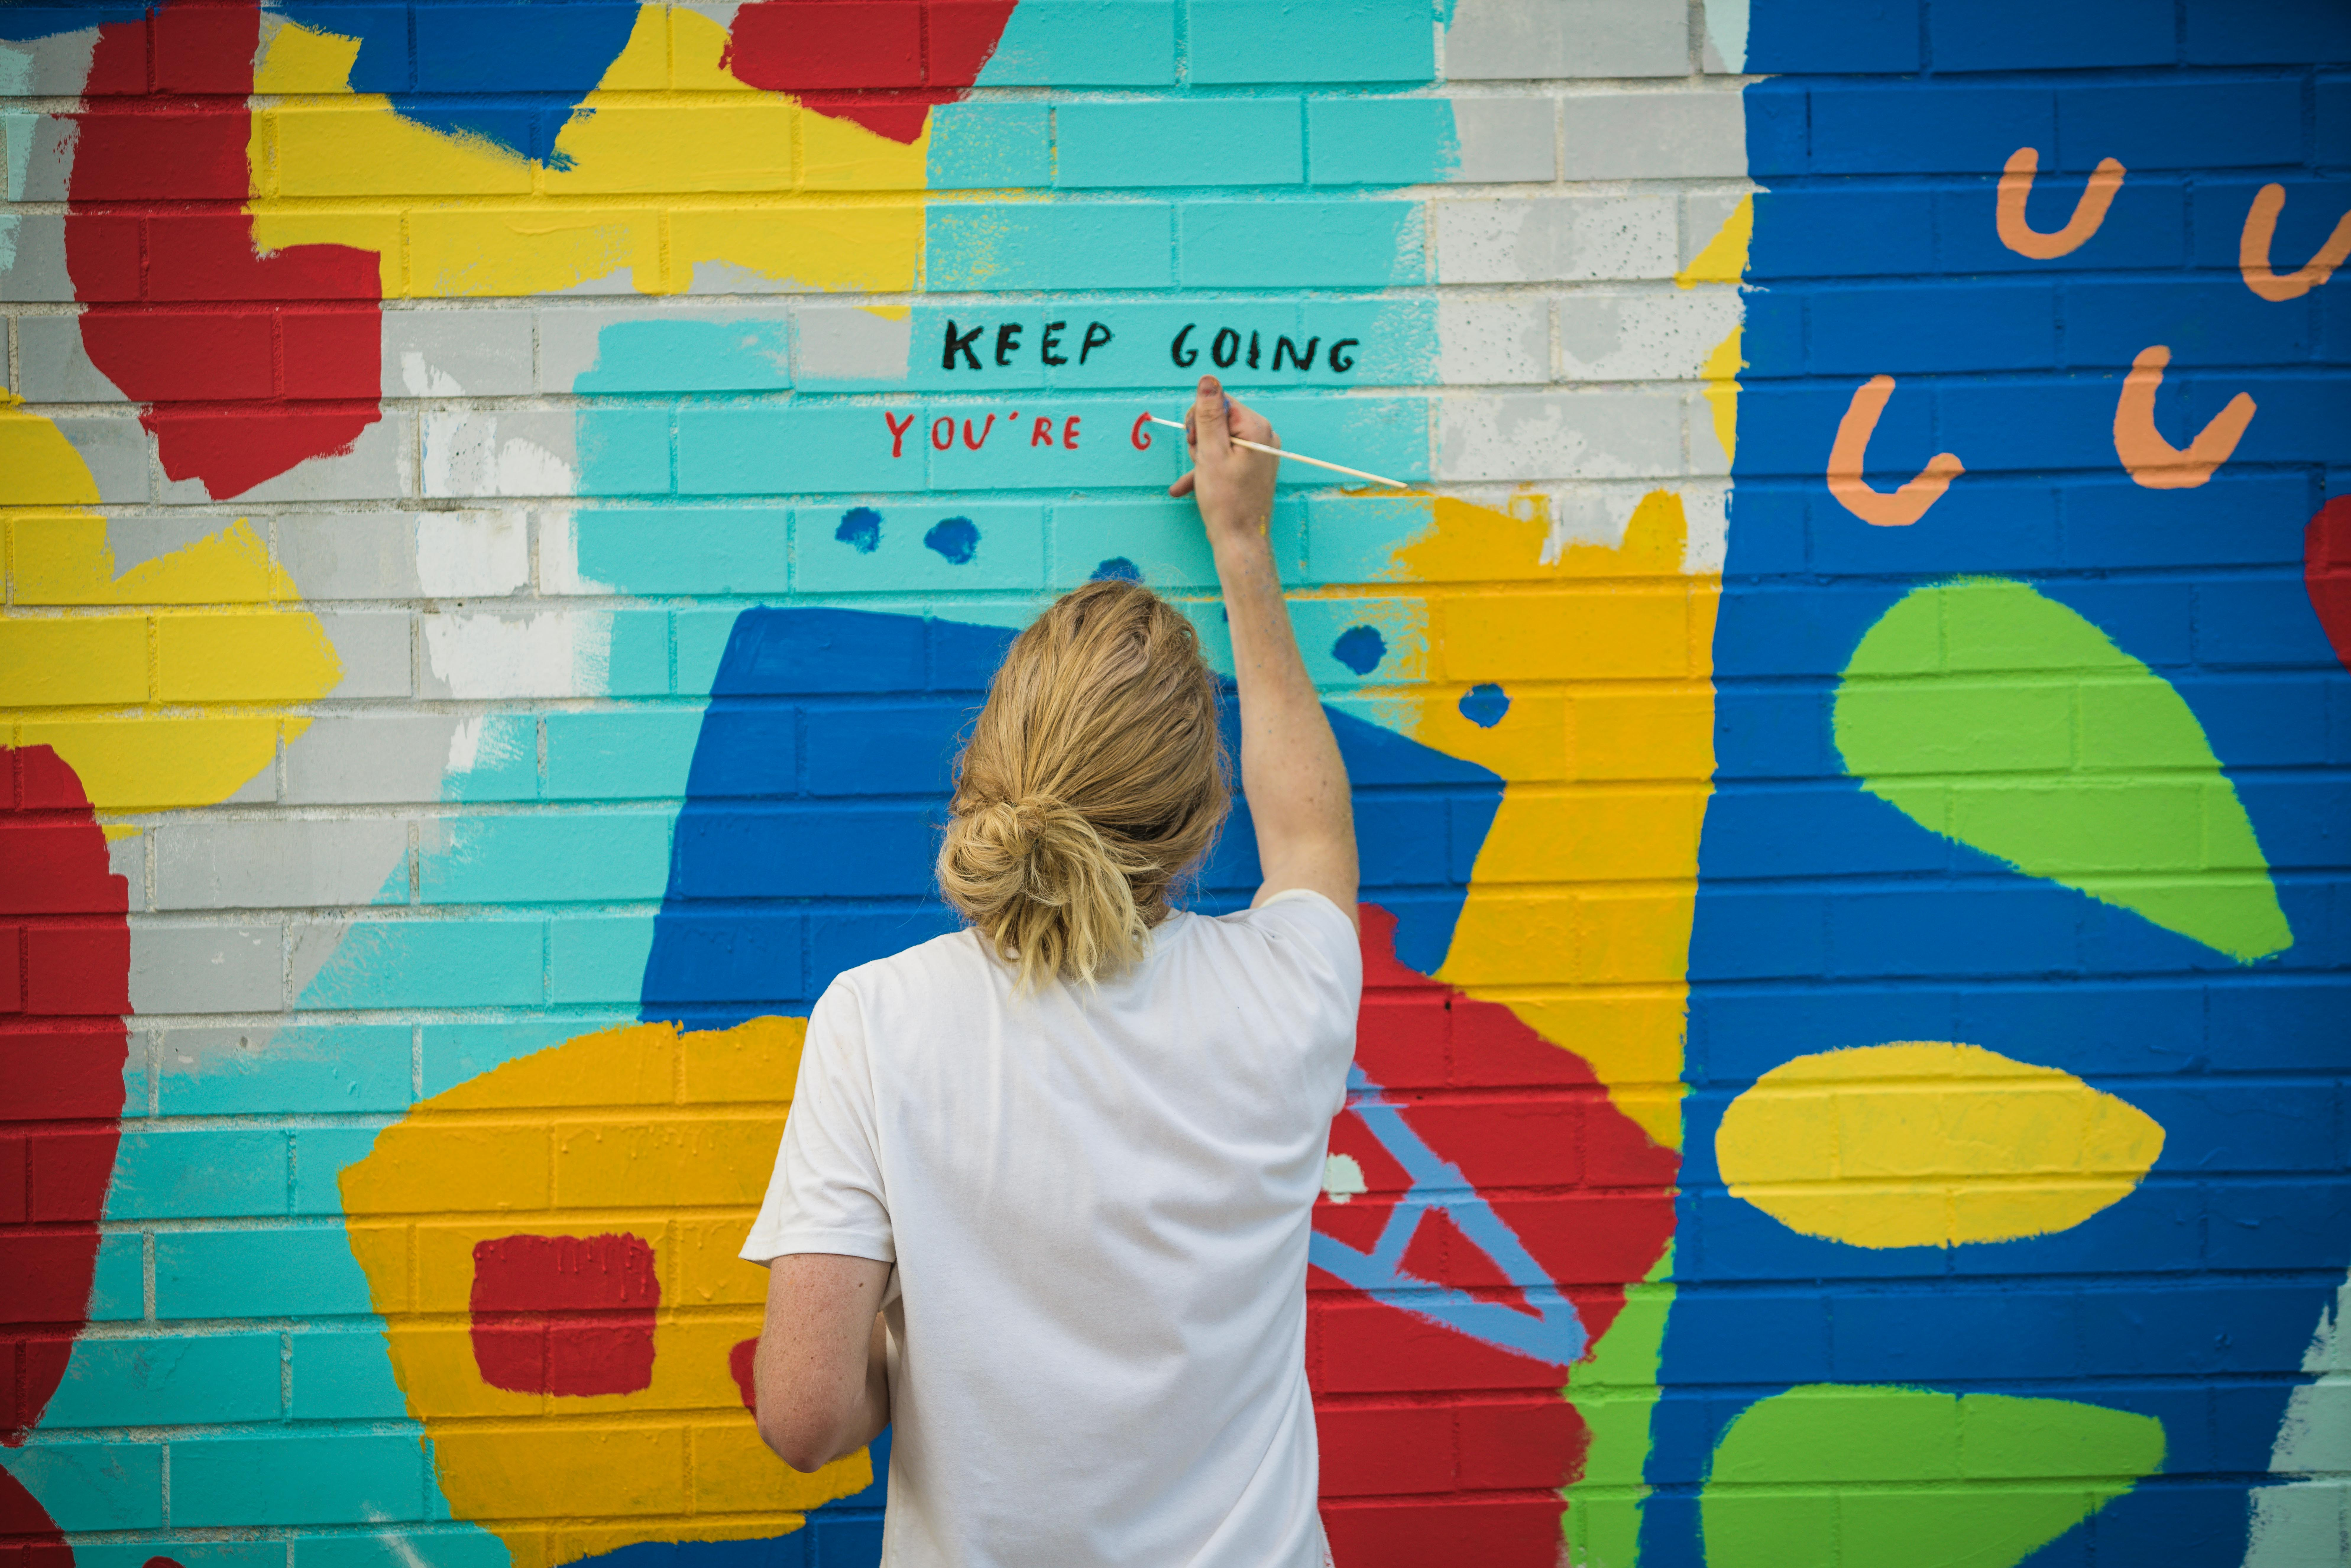 Union market is getting another colorful mural thanks to for Thank you mural